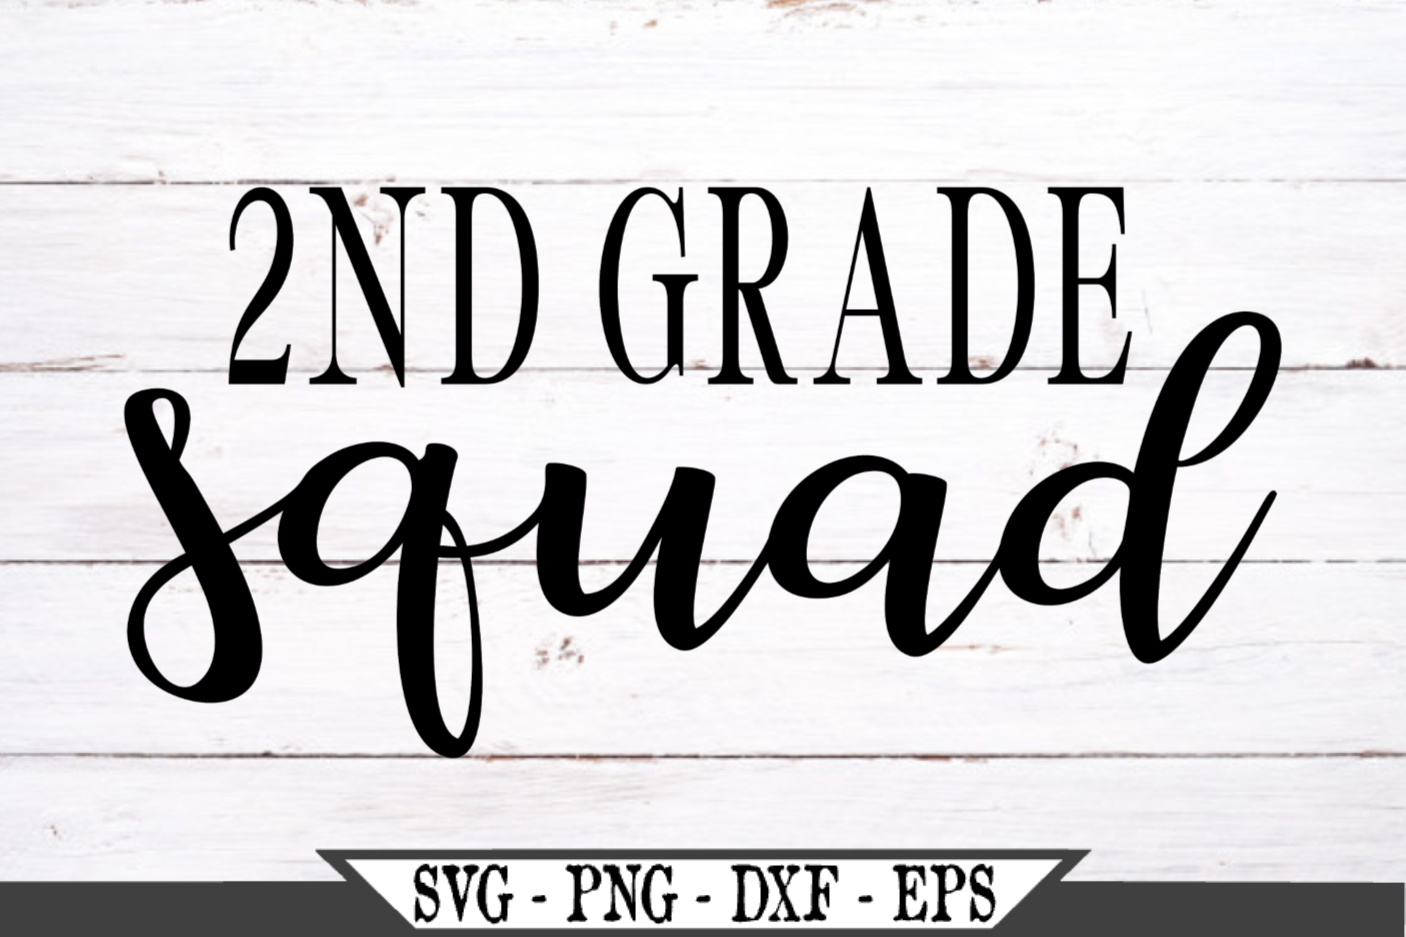 2nd Grade Squad for Second Grader SVG example image 2